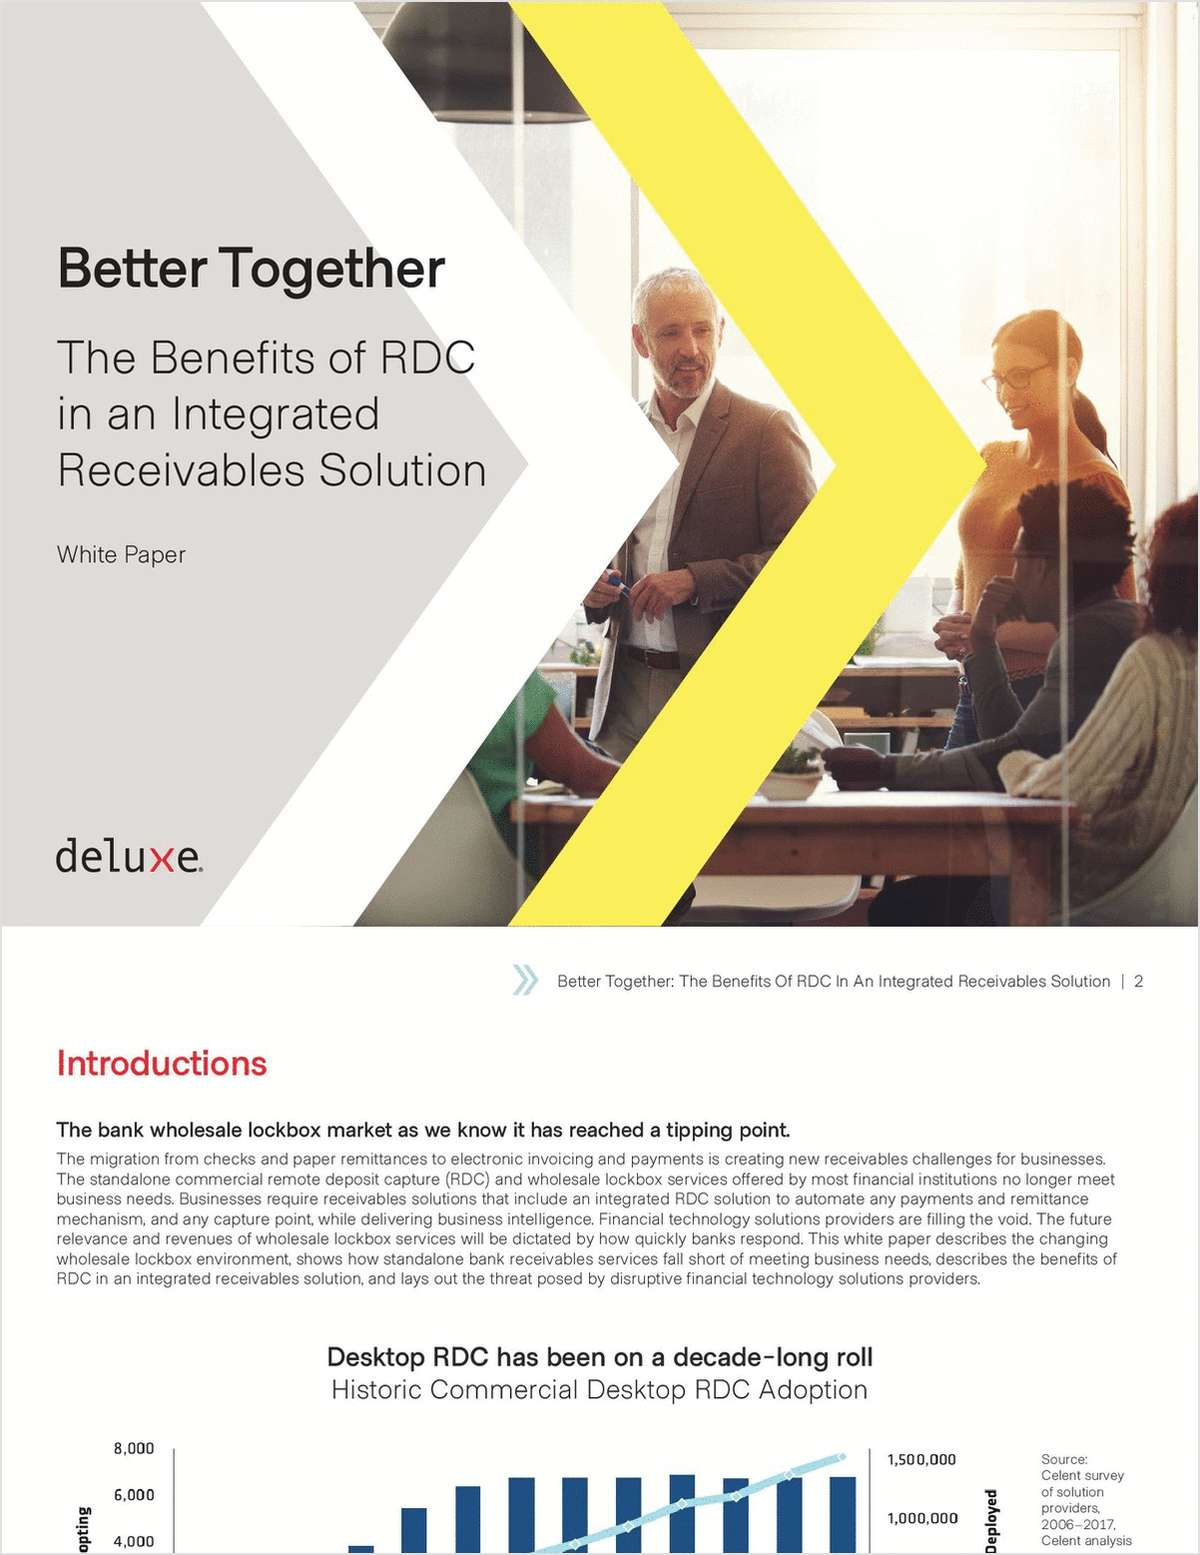 Better Together: The Benefits of RDC in an Integrated Receivables Solution